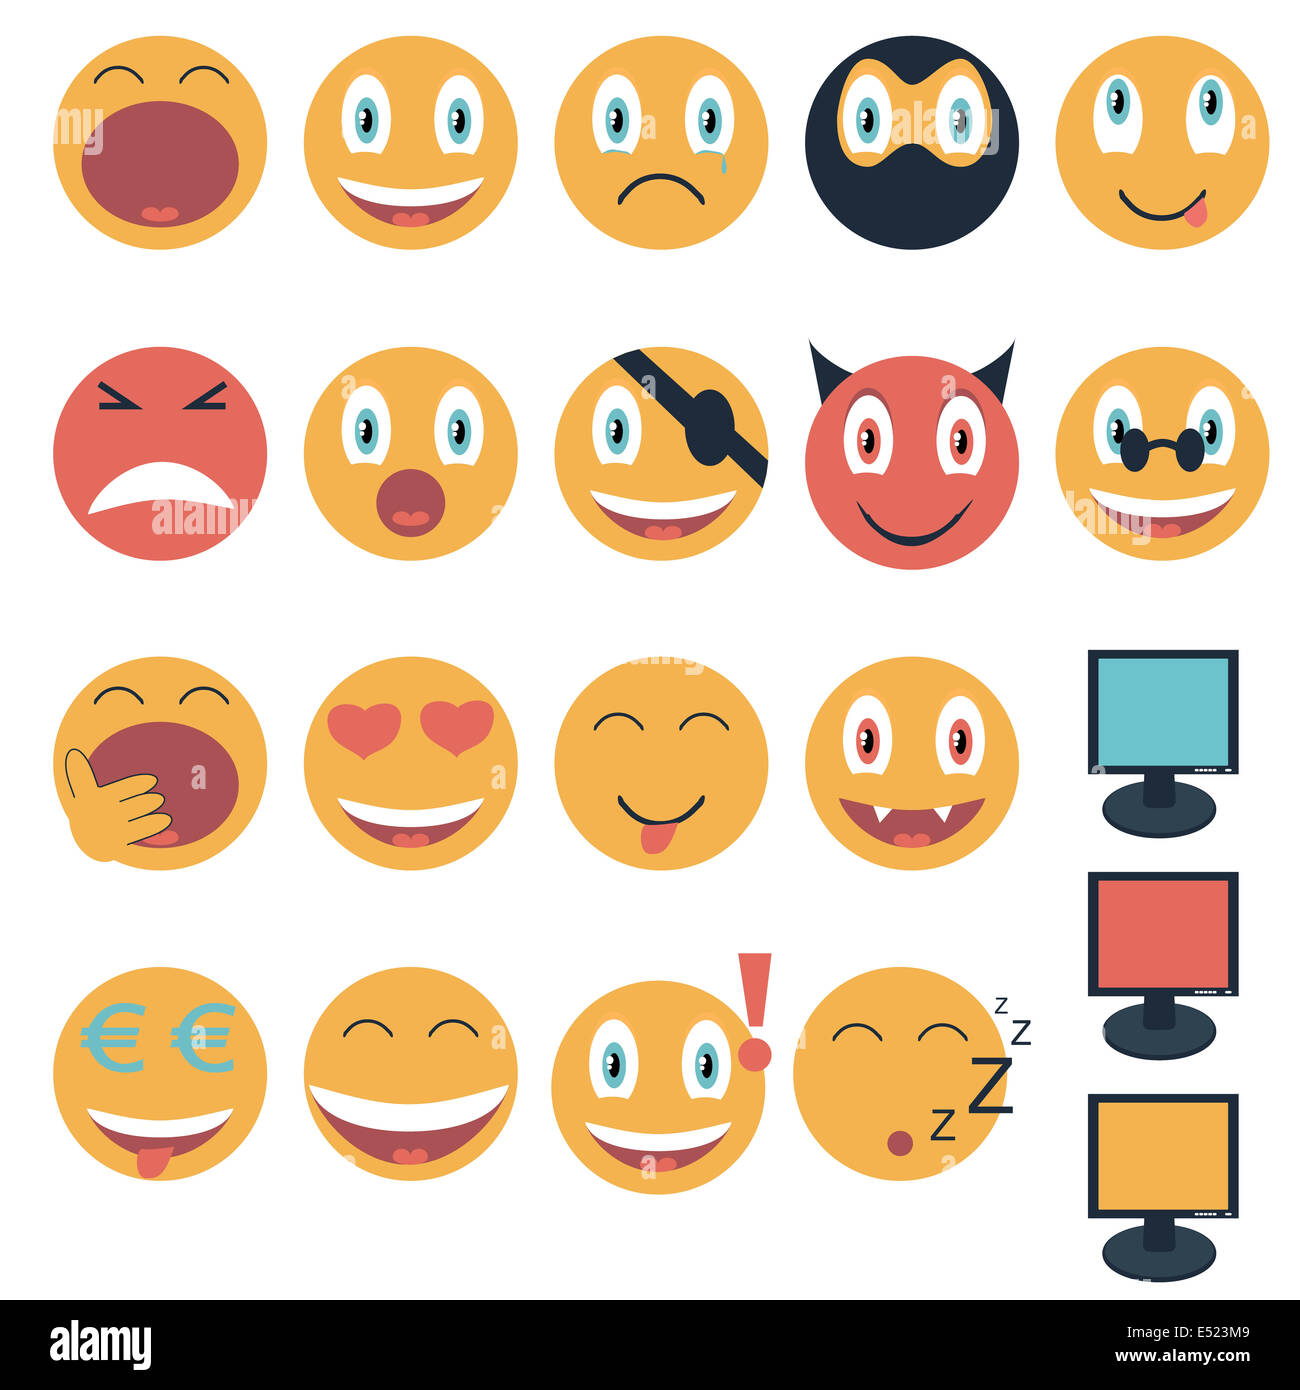 Vintage set of glossy Emoticons - Stock Image